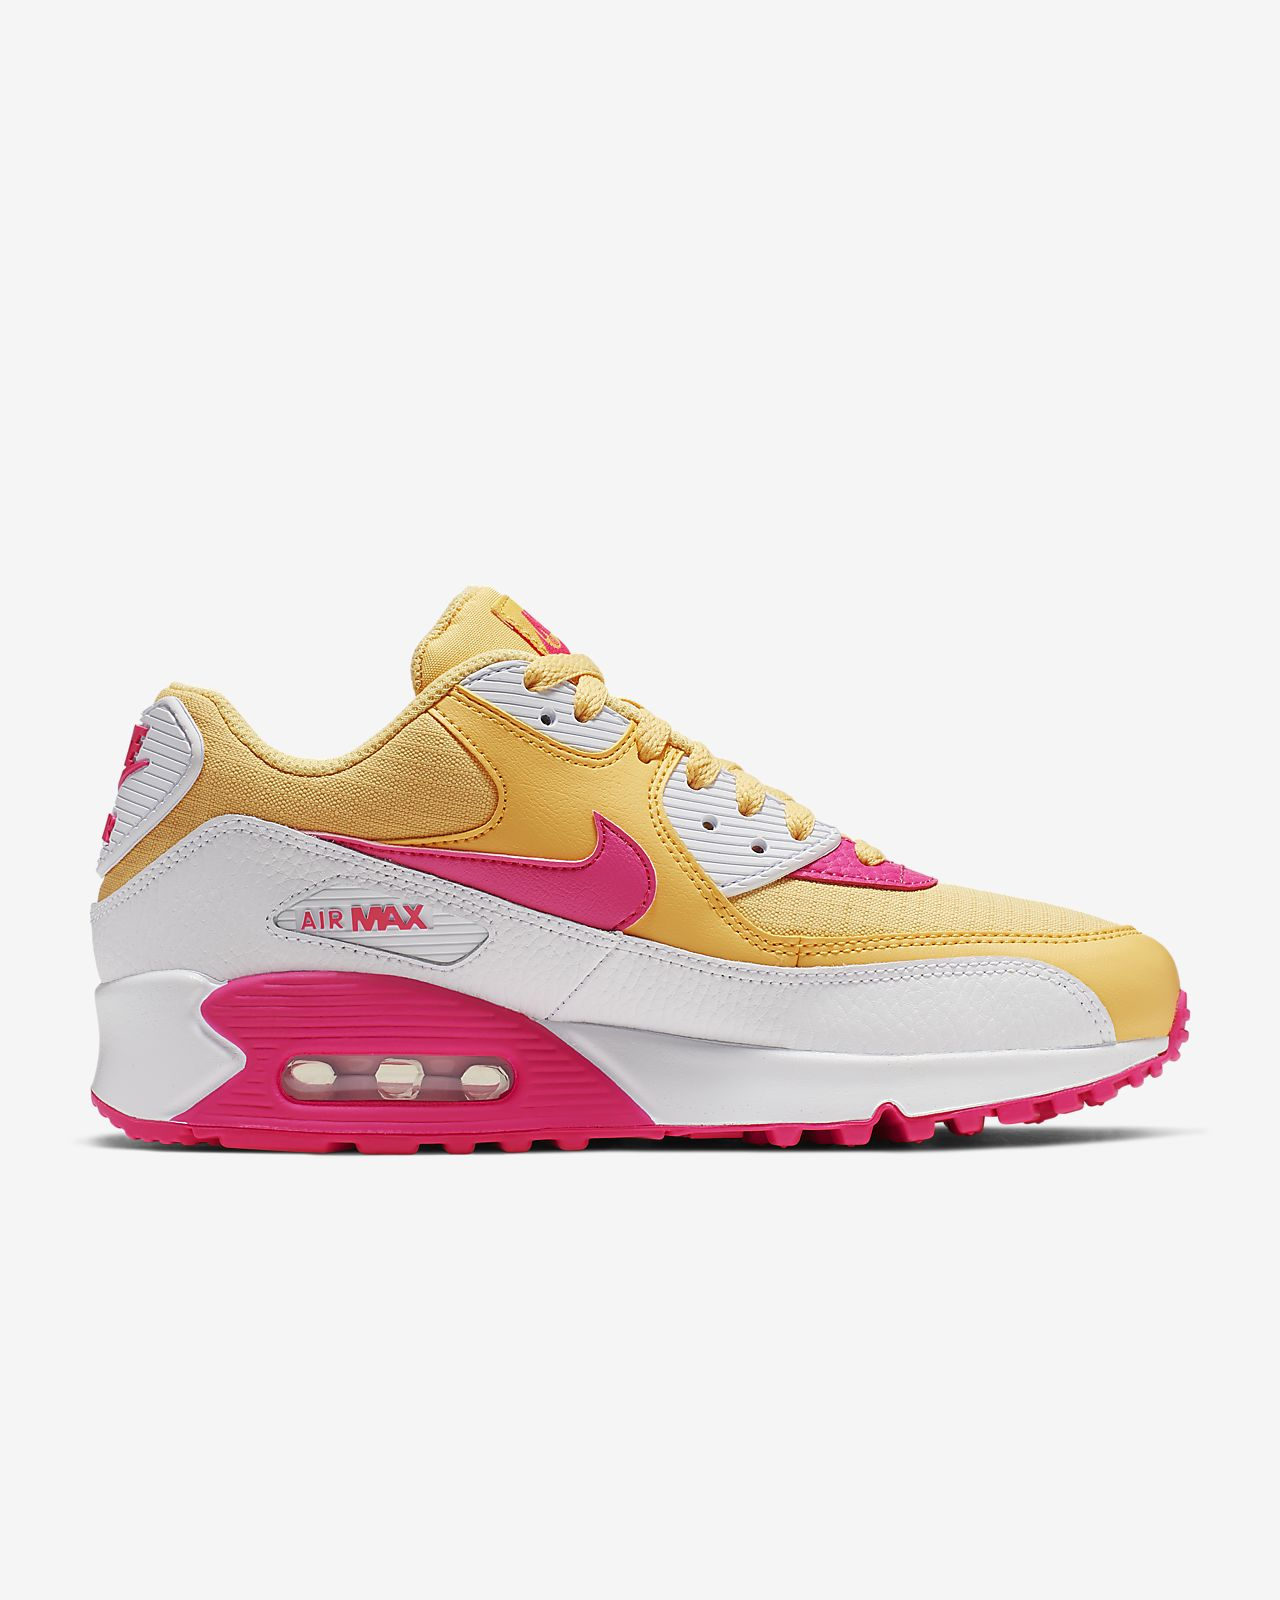 new style 1f2f0 0310b ... Nike Air Max 90 Women s Shoe